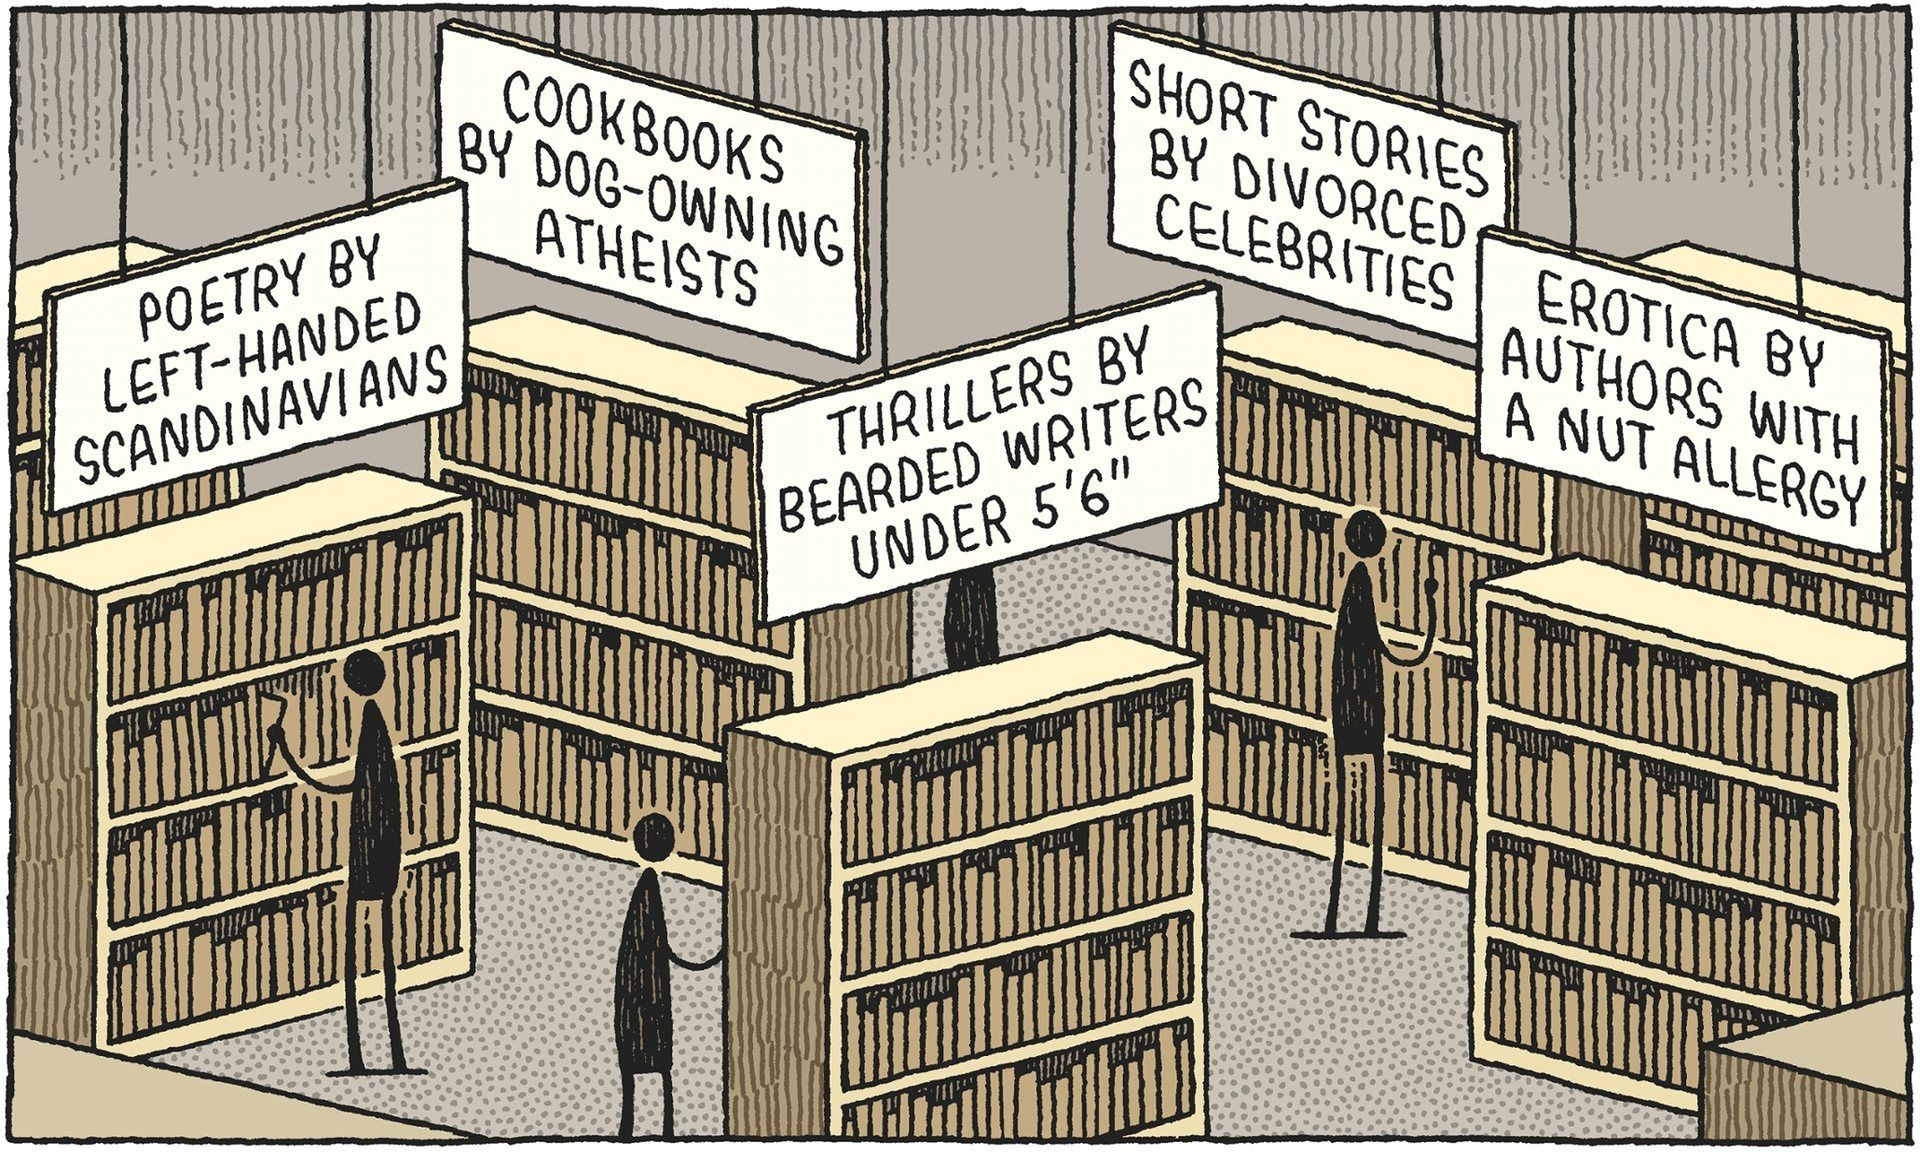 An essay by Aminatta Forna on the pigeonholing of writers was the  inspiration for this scenario. Illustration: Tom Gauld | Library cartoon,  Books, Jealous of me